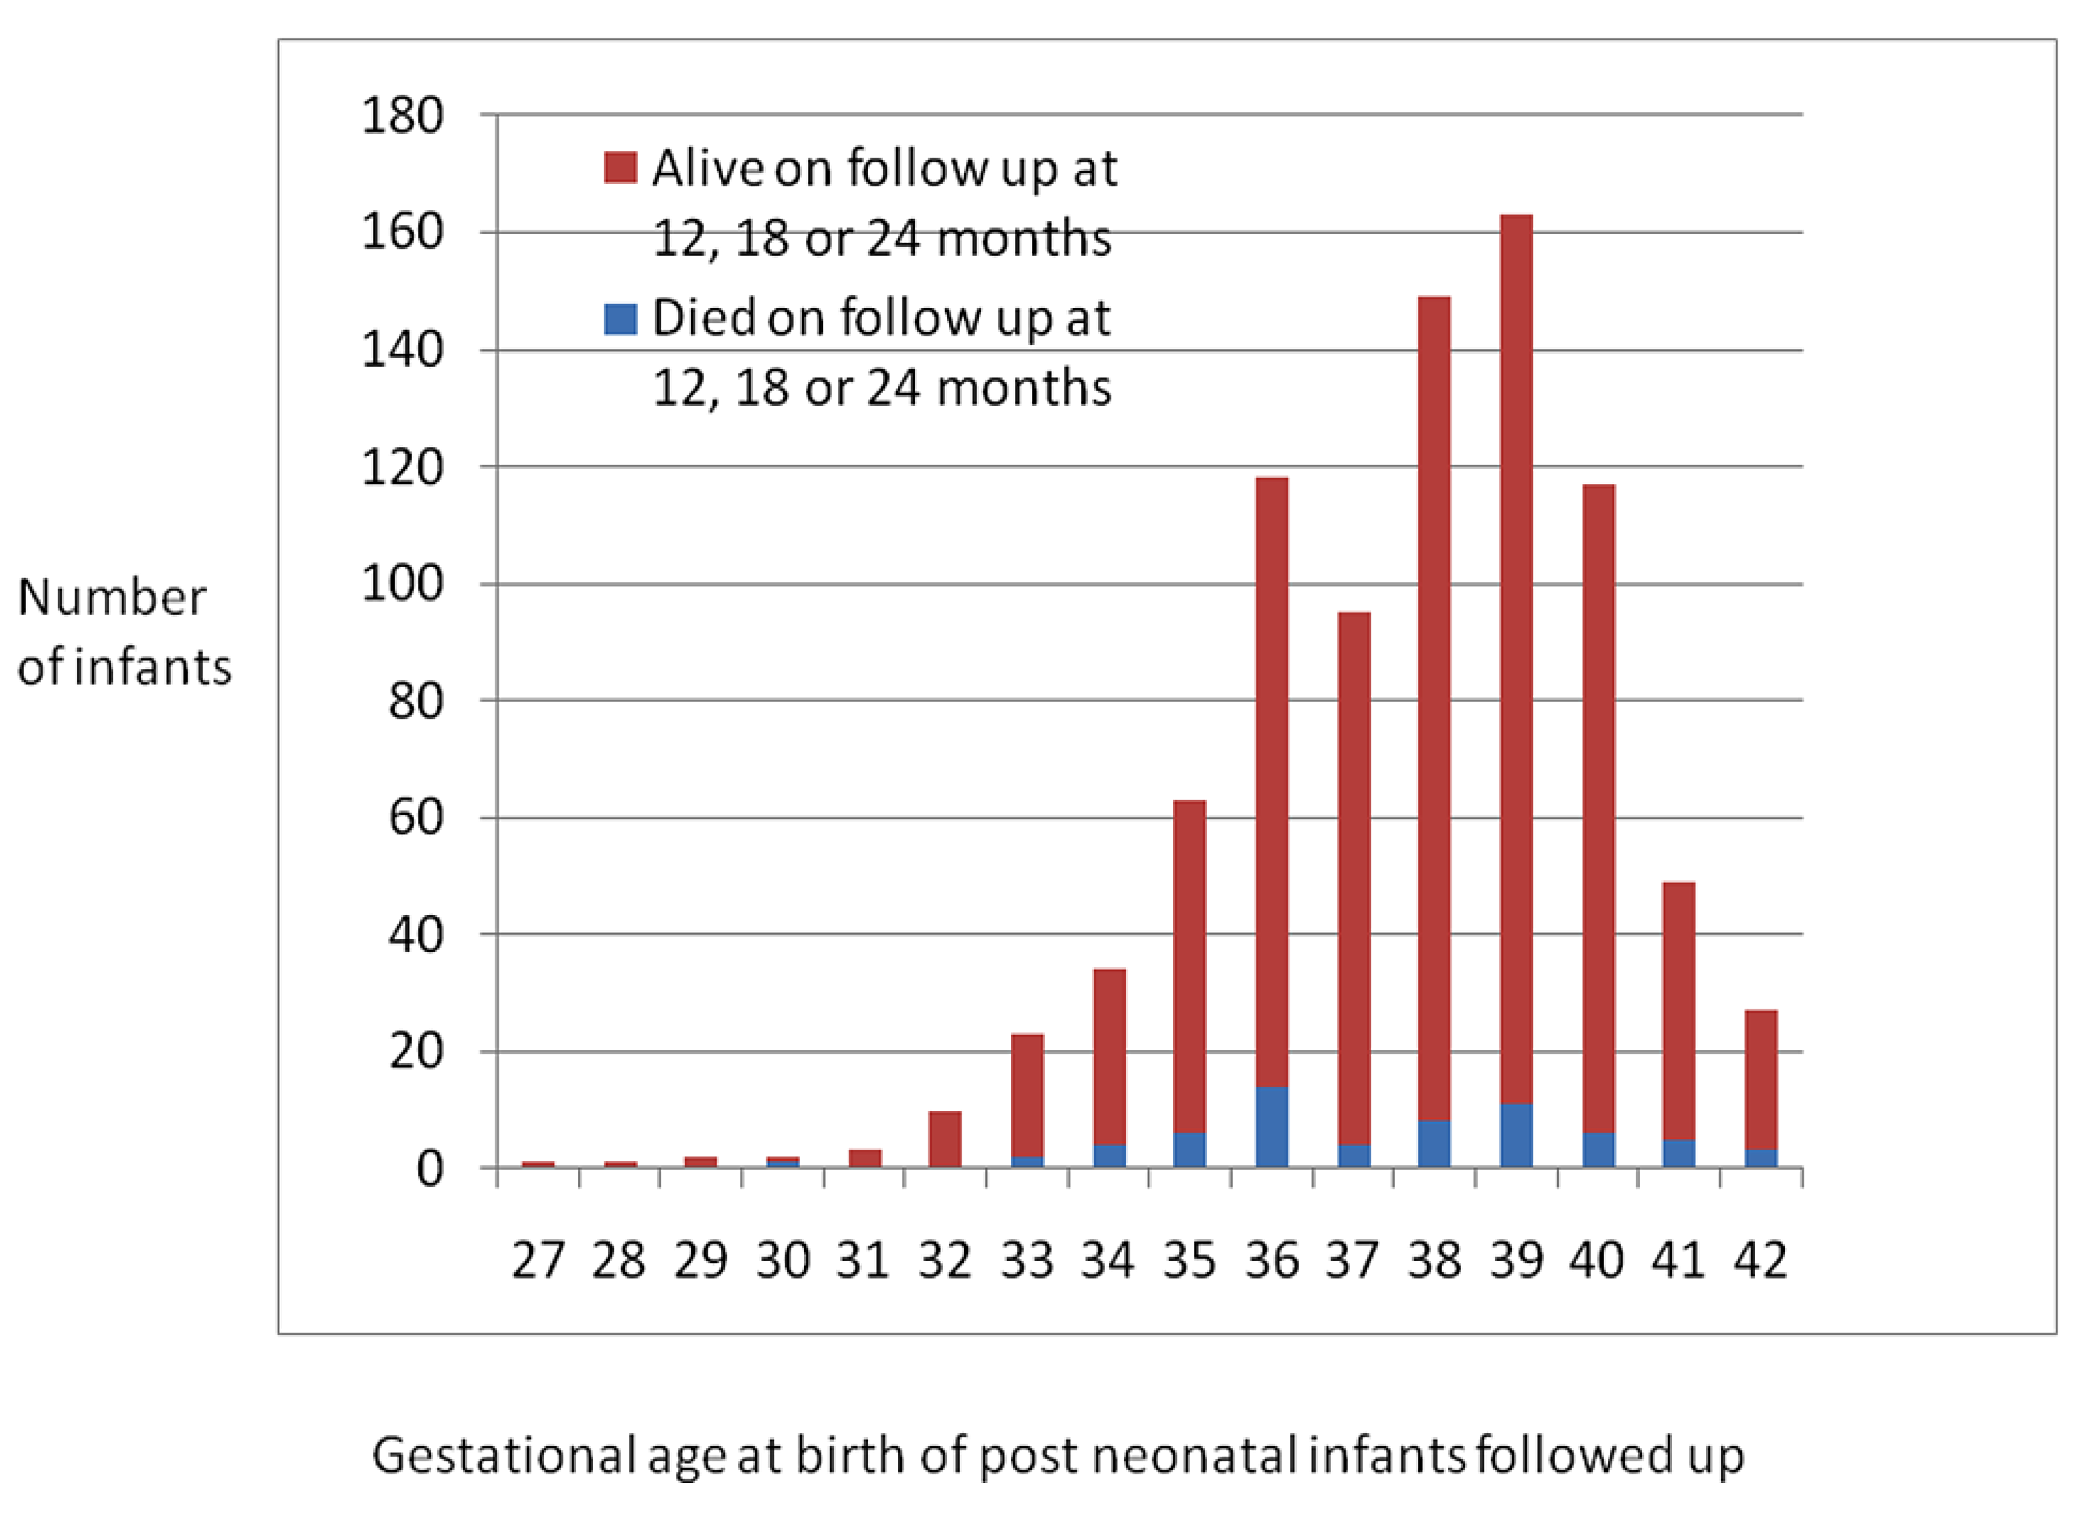 Number of post-neonatal infants followed up by gestational age at birth.